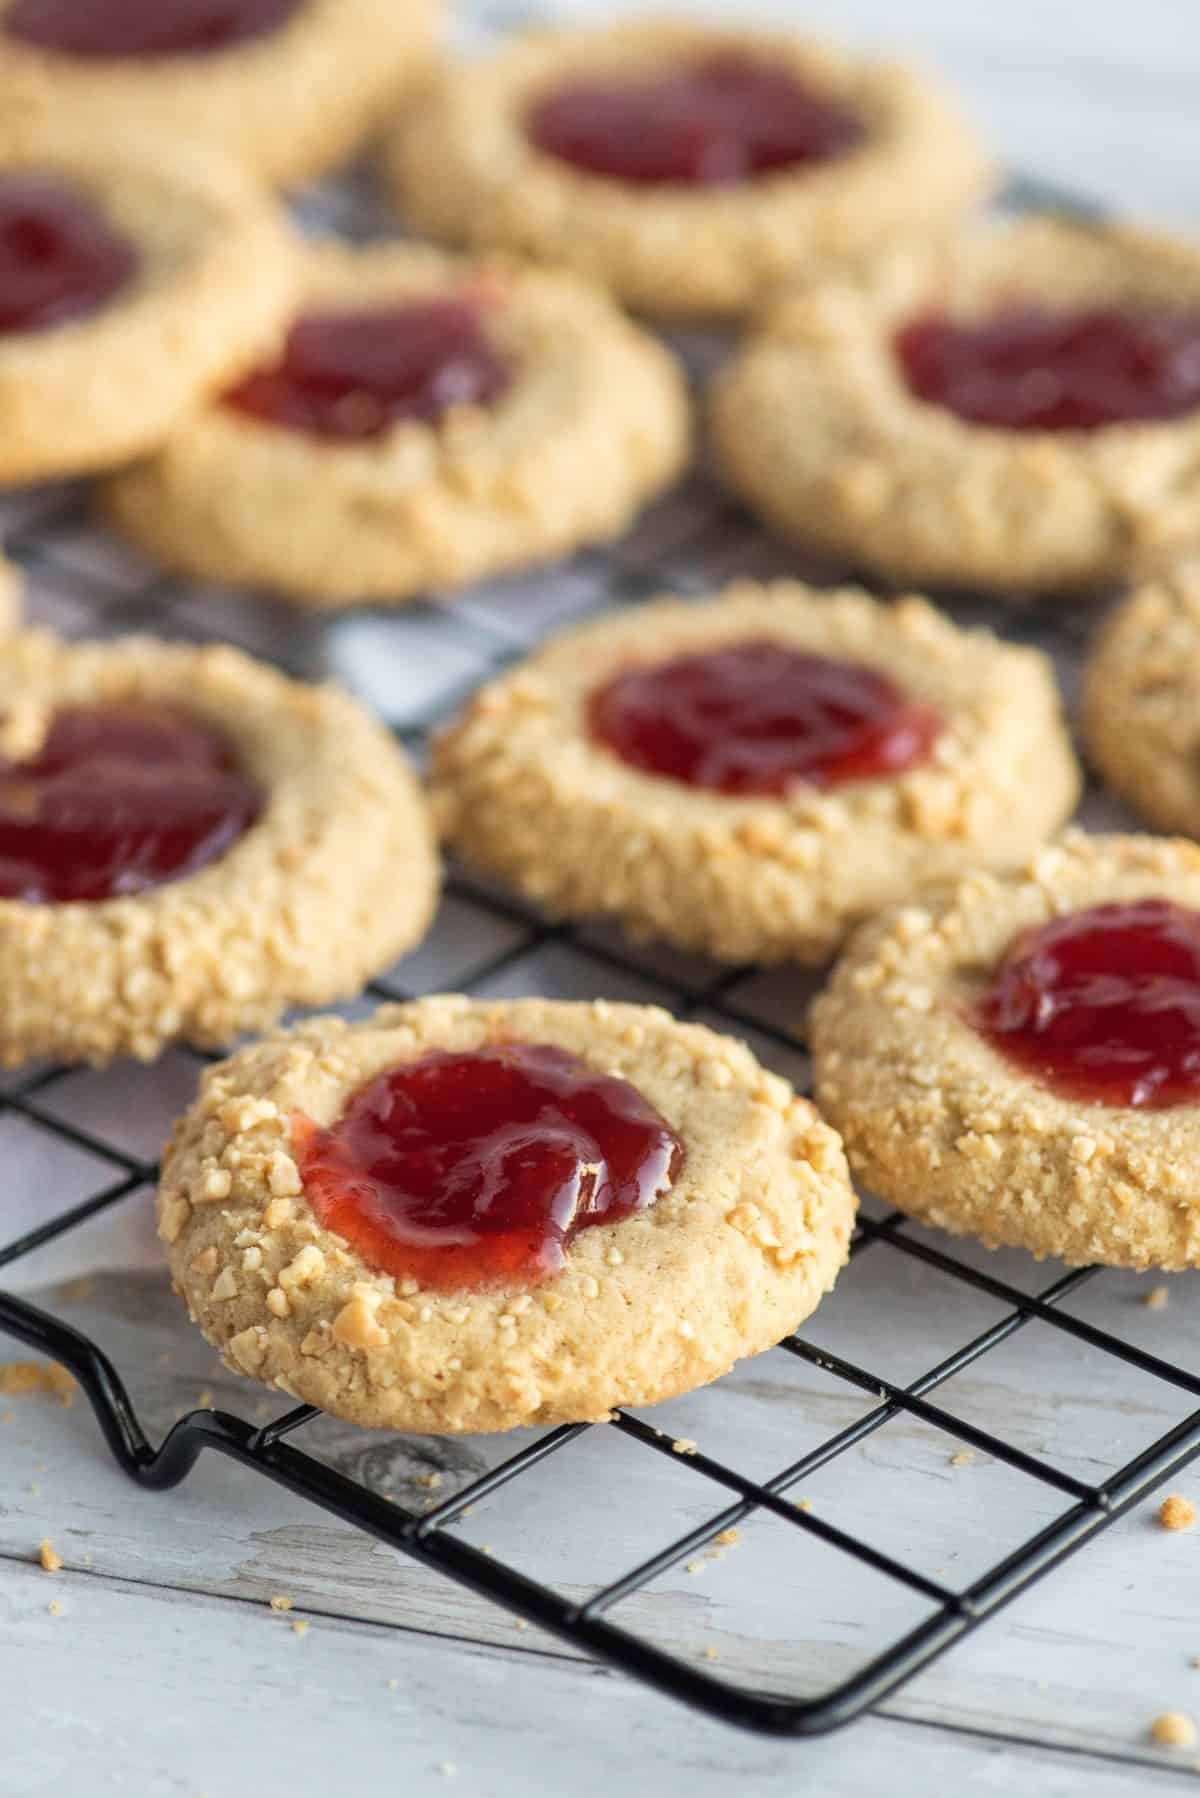 Peanut Butter and Jelly Cookies on a cooling rack.